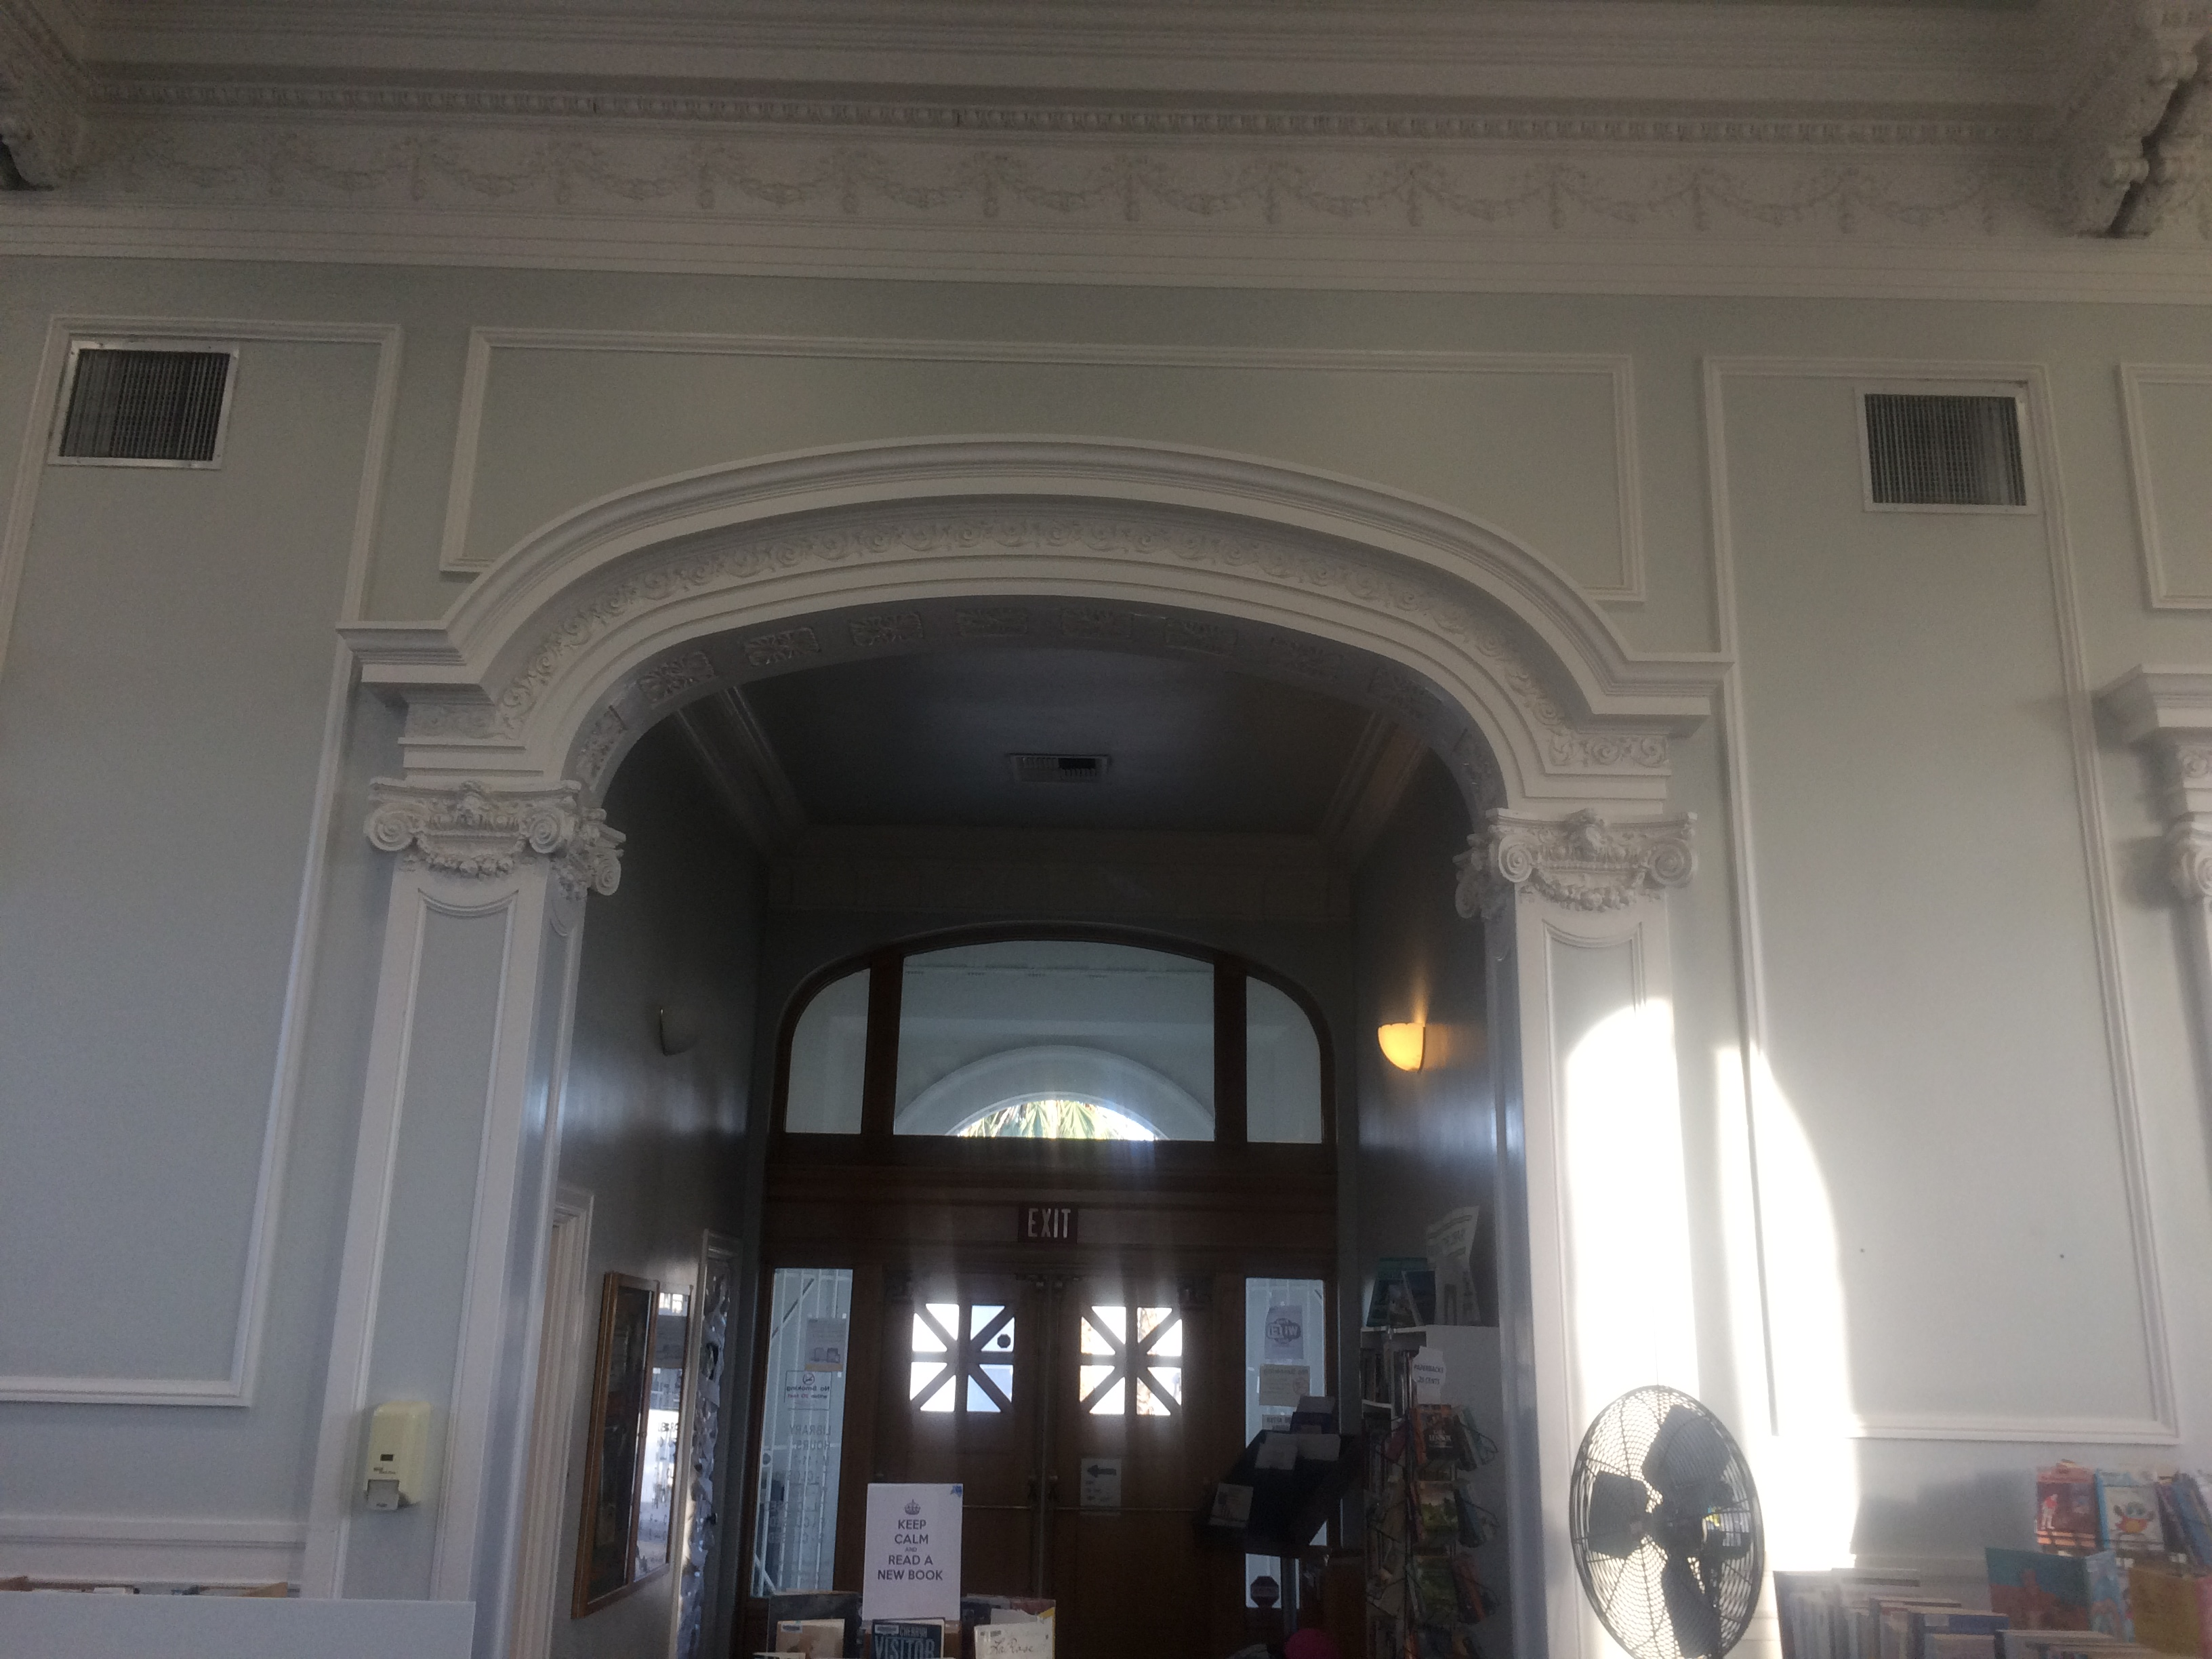 Inside arch (Front of library)